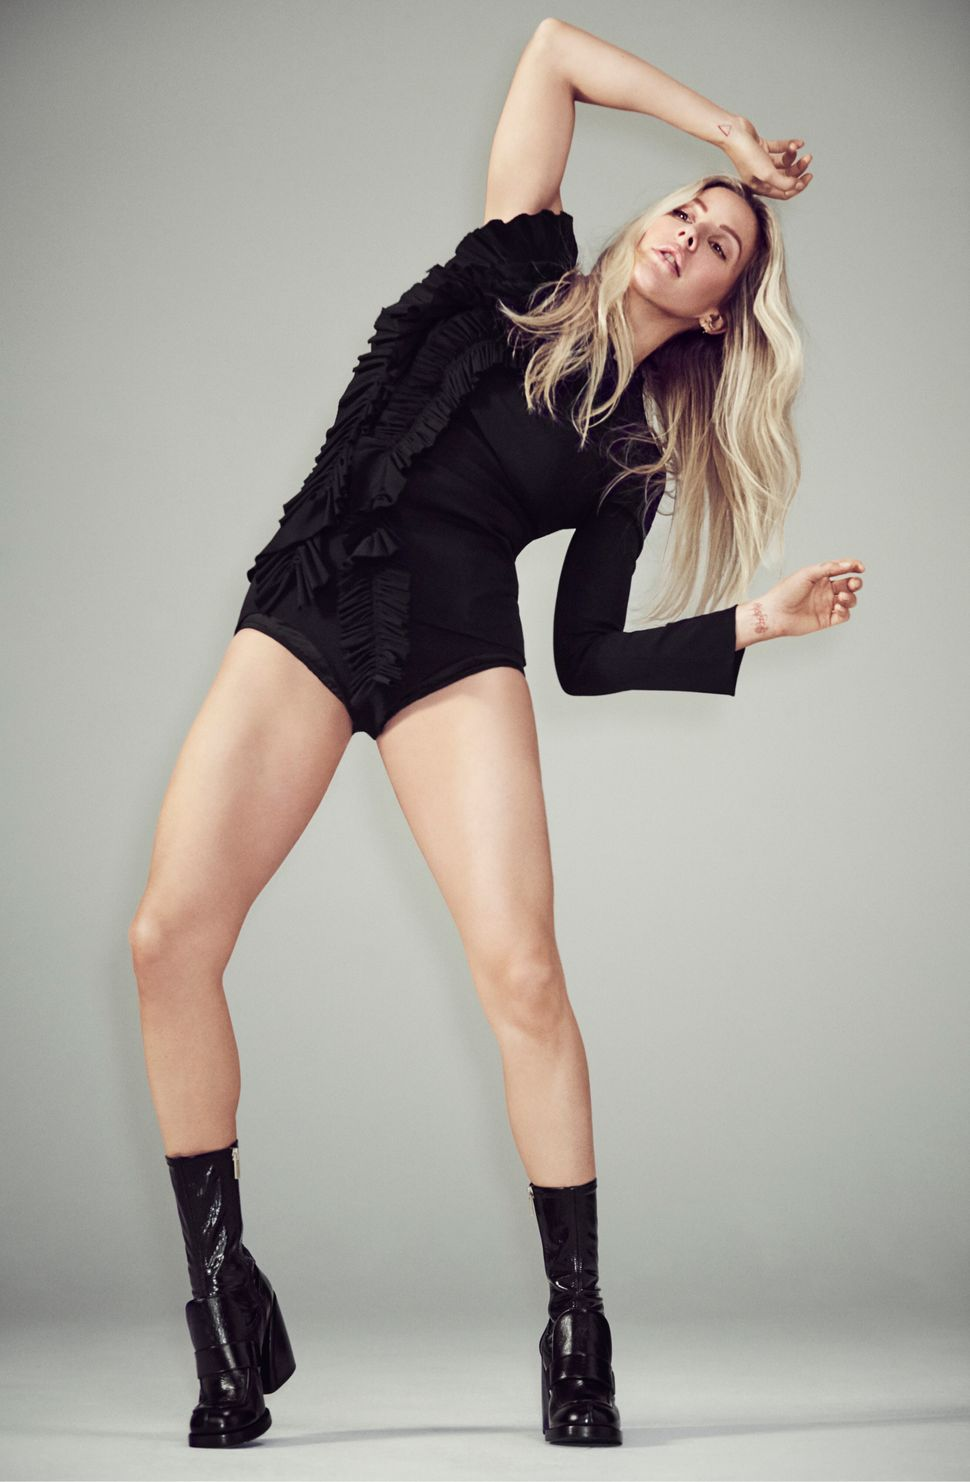 Ellie Goulding is working on new music for her fourth studio album.